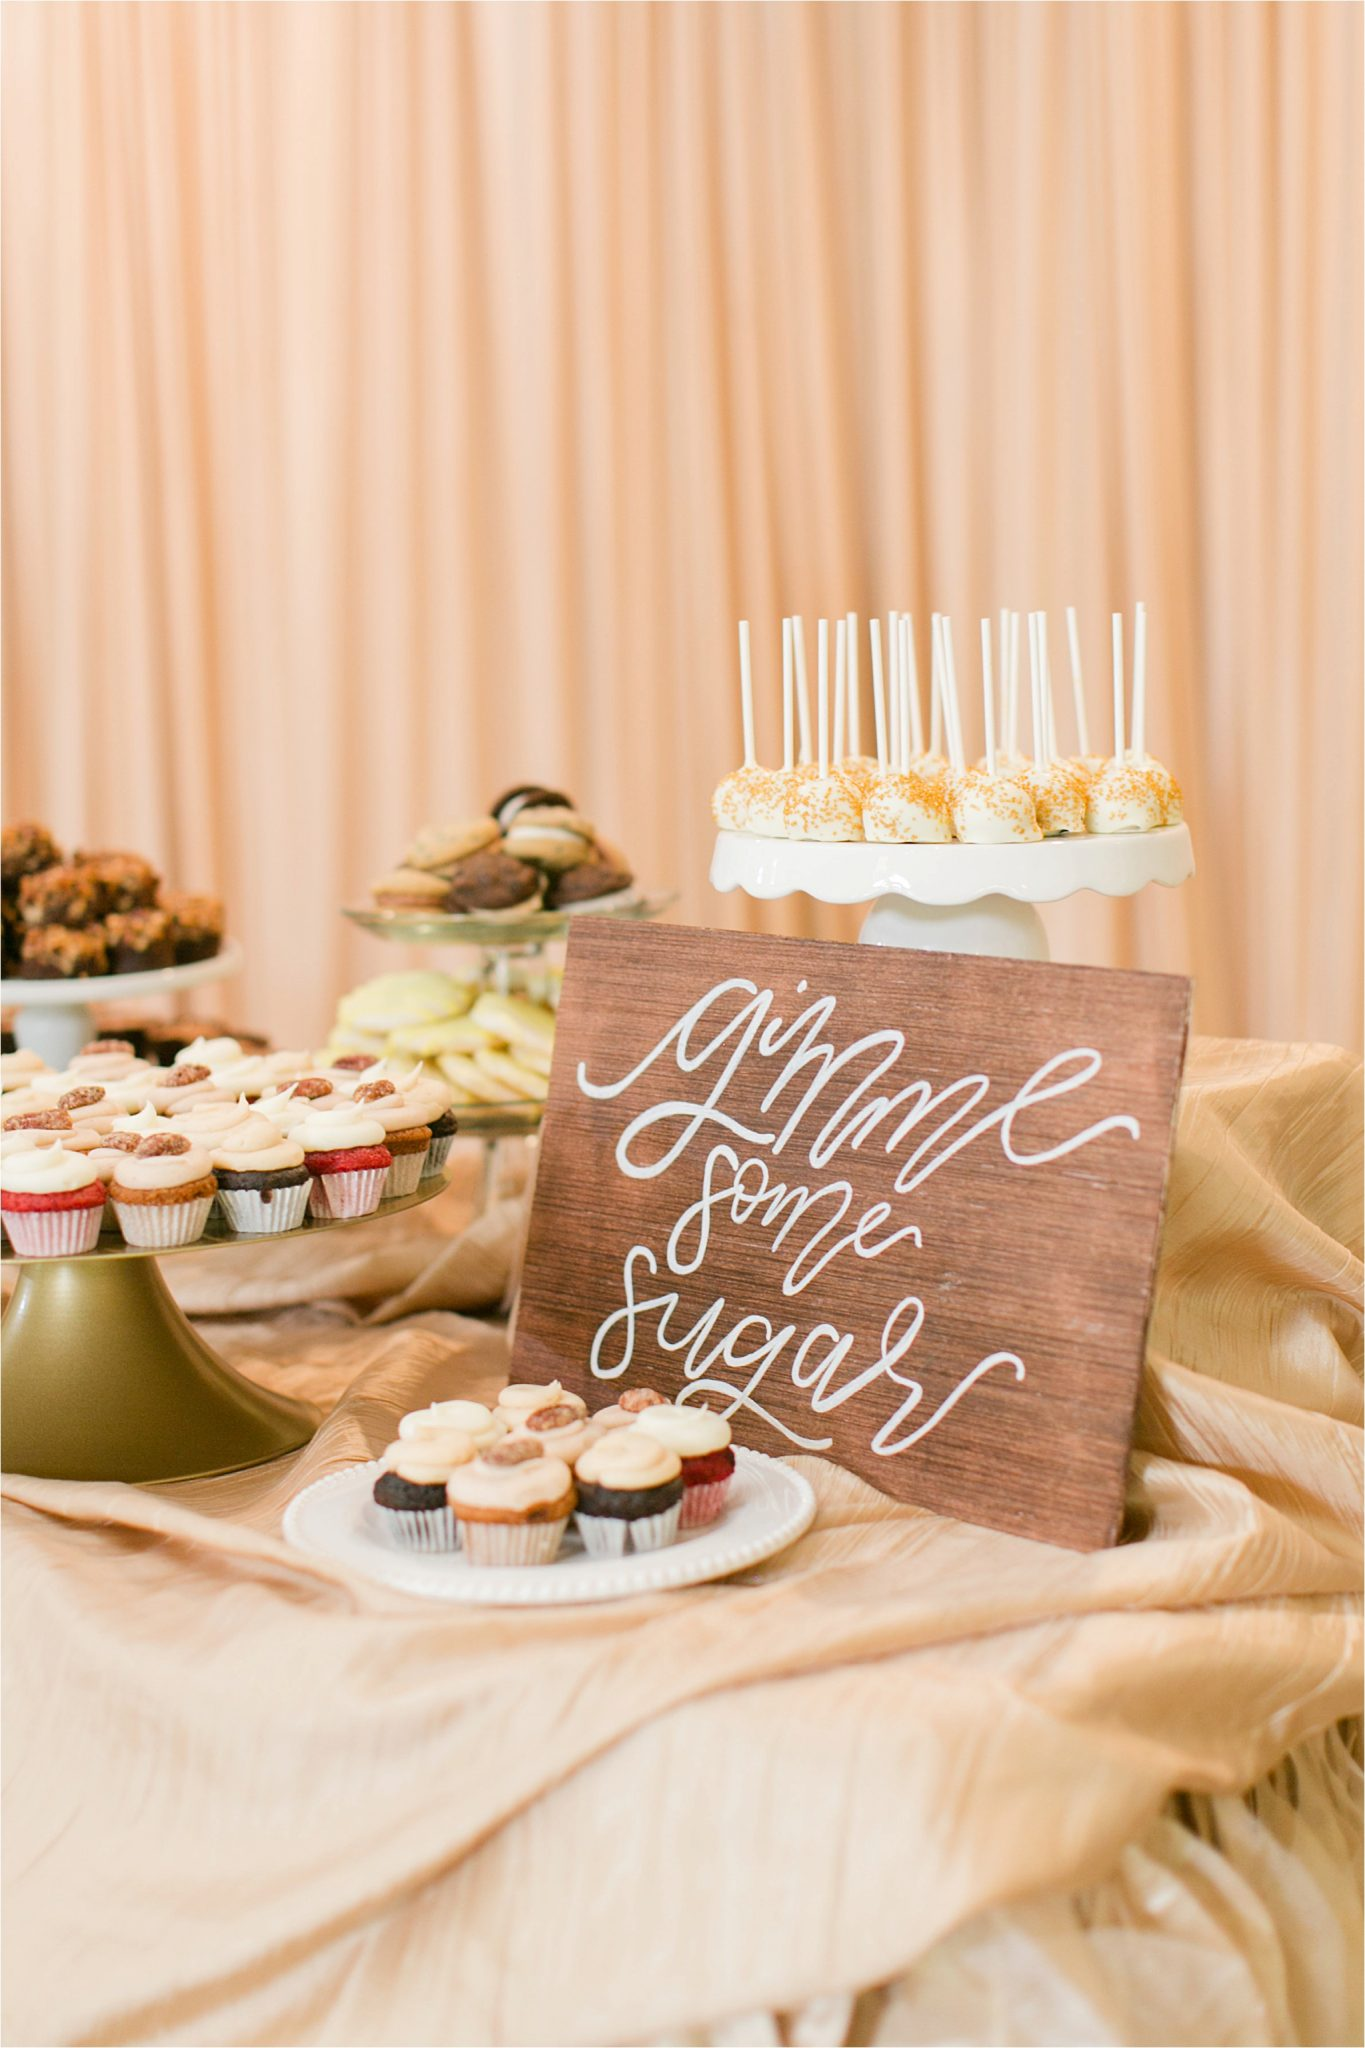 EllenJay Dessert Bar-dessert table-wedding-reception-food ideas-wedding signs-dessert table